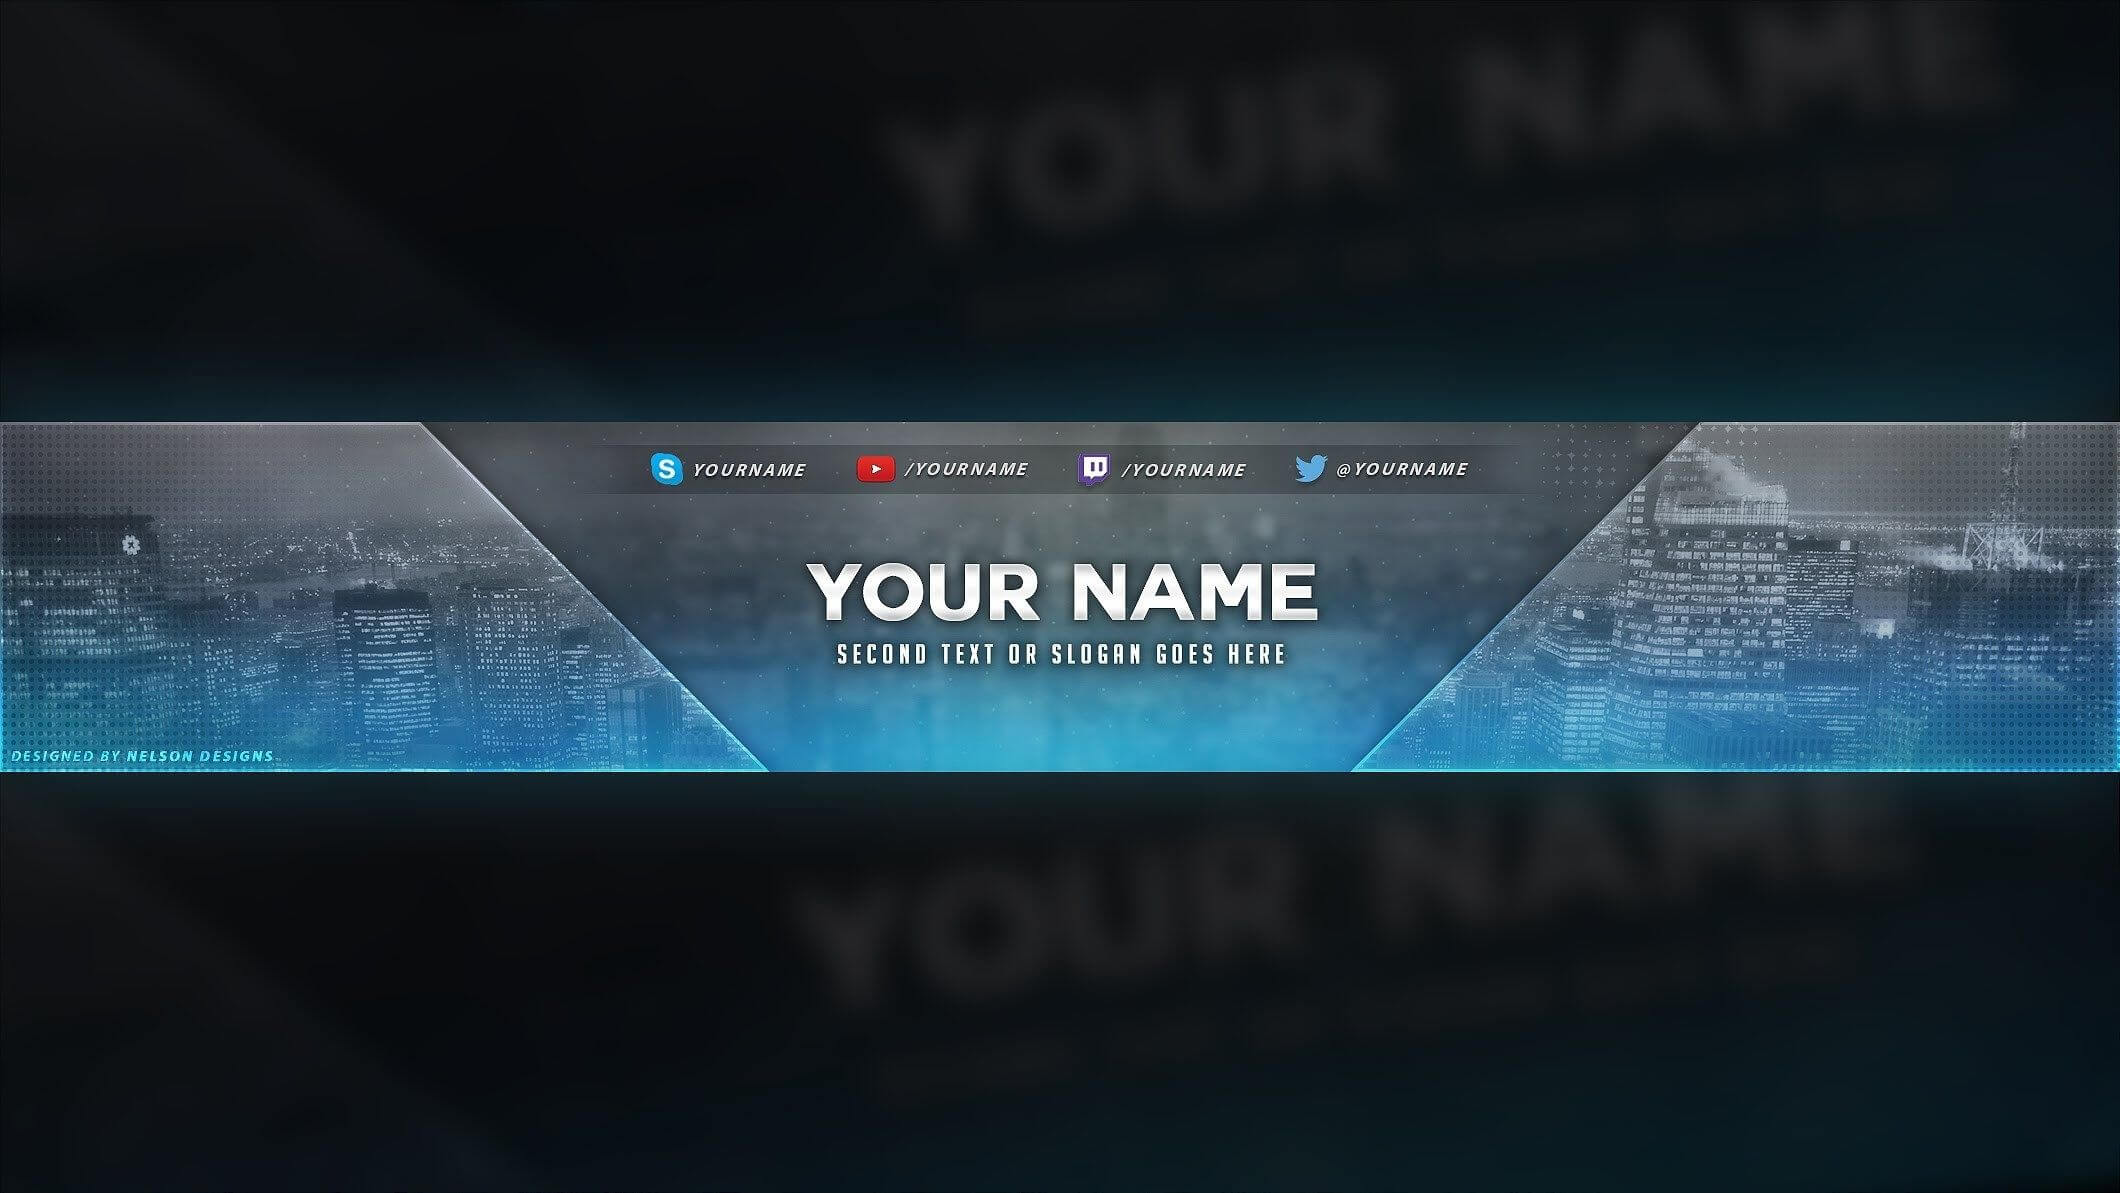 4 Free Youtube Banner Psd Template Designs - Social Media Pertaining To Yt Banner Template